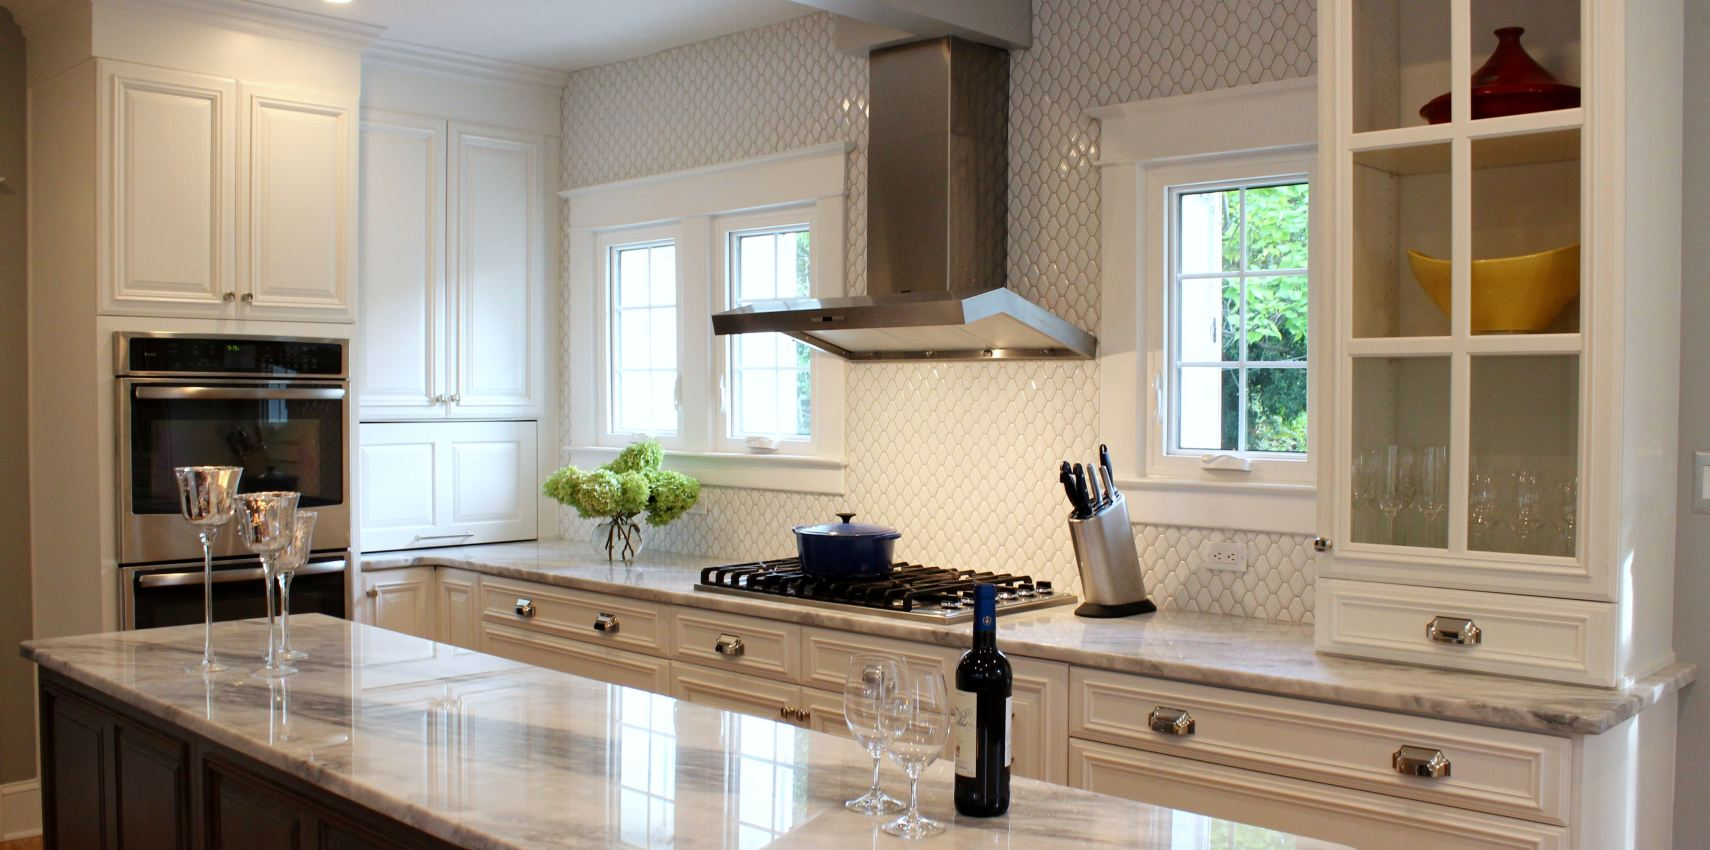 Should Kitchen Cabinets Go Up To Ceiling Get A To Die For Kitchen Without Killing Your Budget